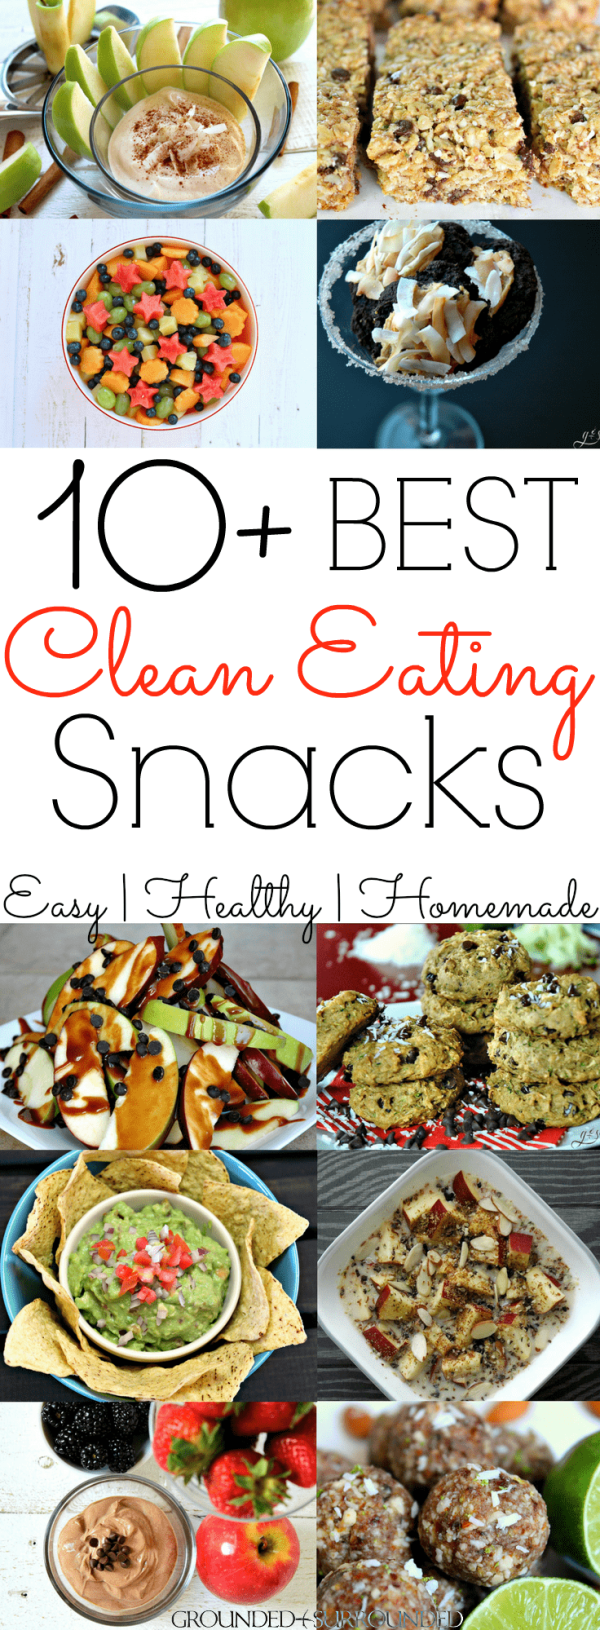 10+ Clean Eating Snack Recipes | Aren't we all looking for easy and quick snacks to take with us on the go or to lose weight (for weightloss). Homemade snacks are always the best, but sometimes we have to settle for store bought. Whether you fancy sweet or savory low carb ideas these will provide you with protein and fiber to keep you full! These healthy snacks are also great for kids, toddlers, teens and everyone in between.